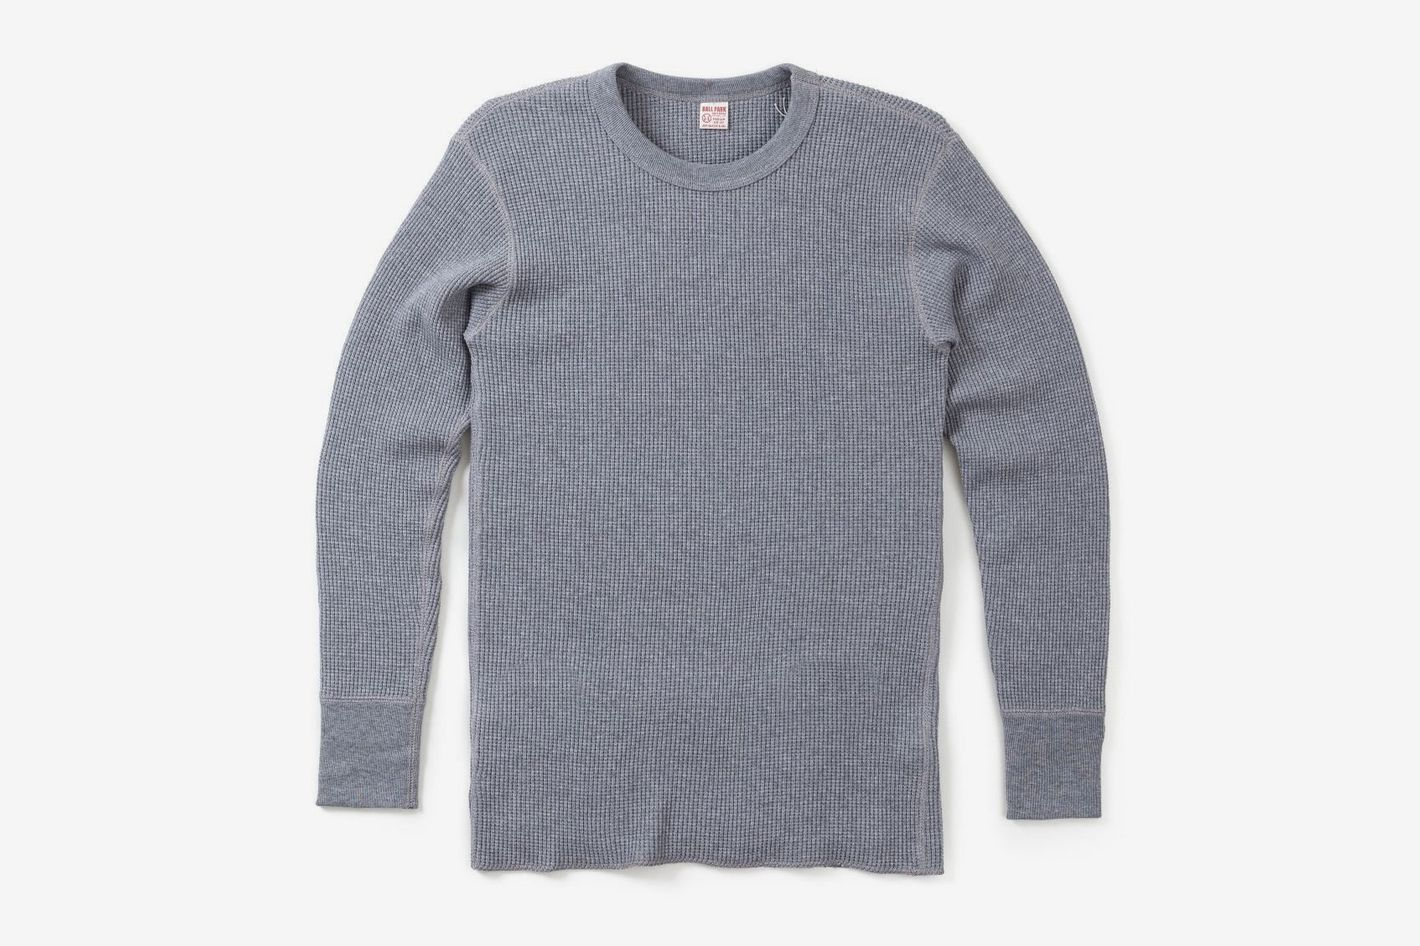 33f08e02 The Real McCoy's — Joe McCoy Waffle Knit Thermal Shirt, Grey